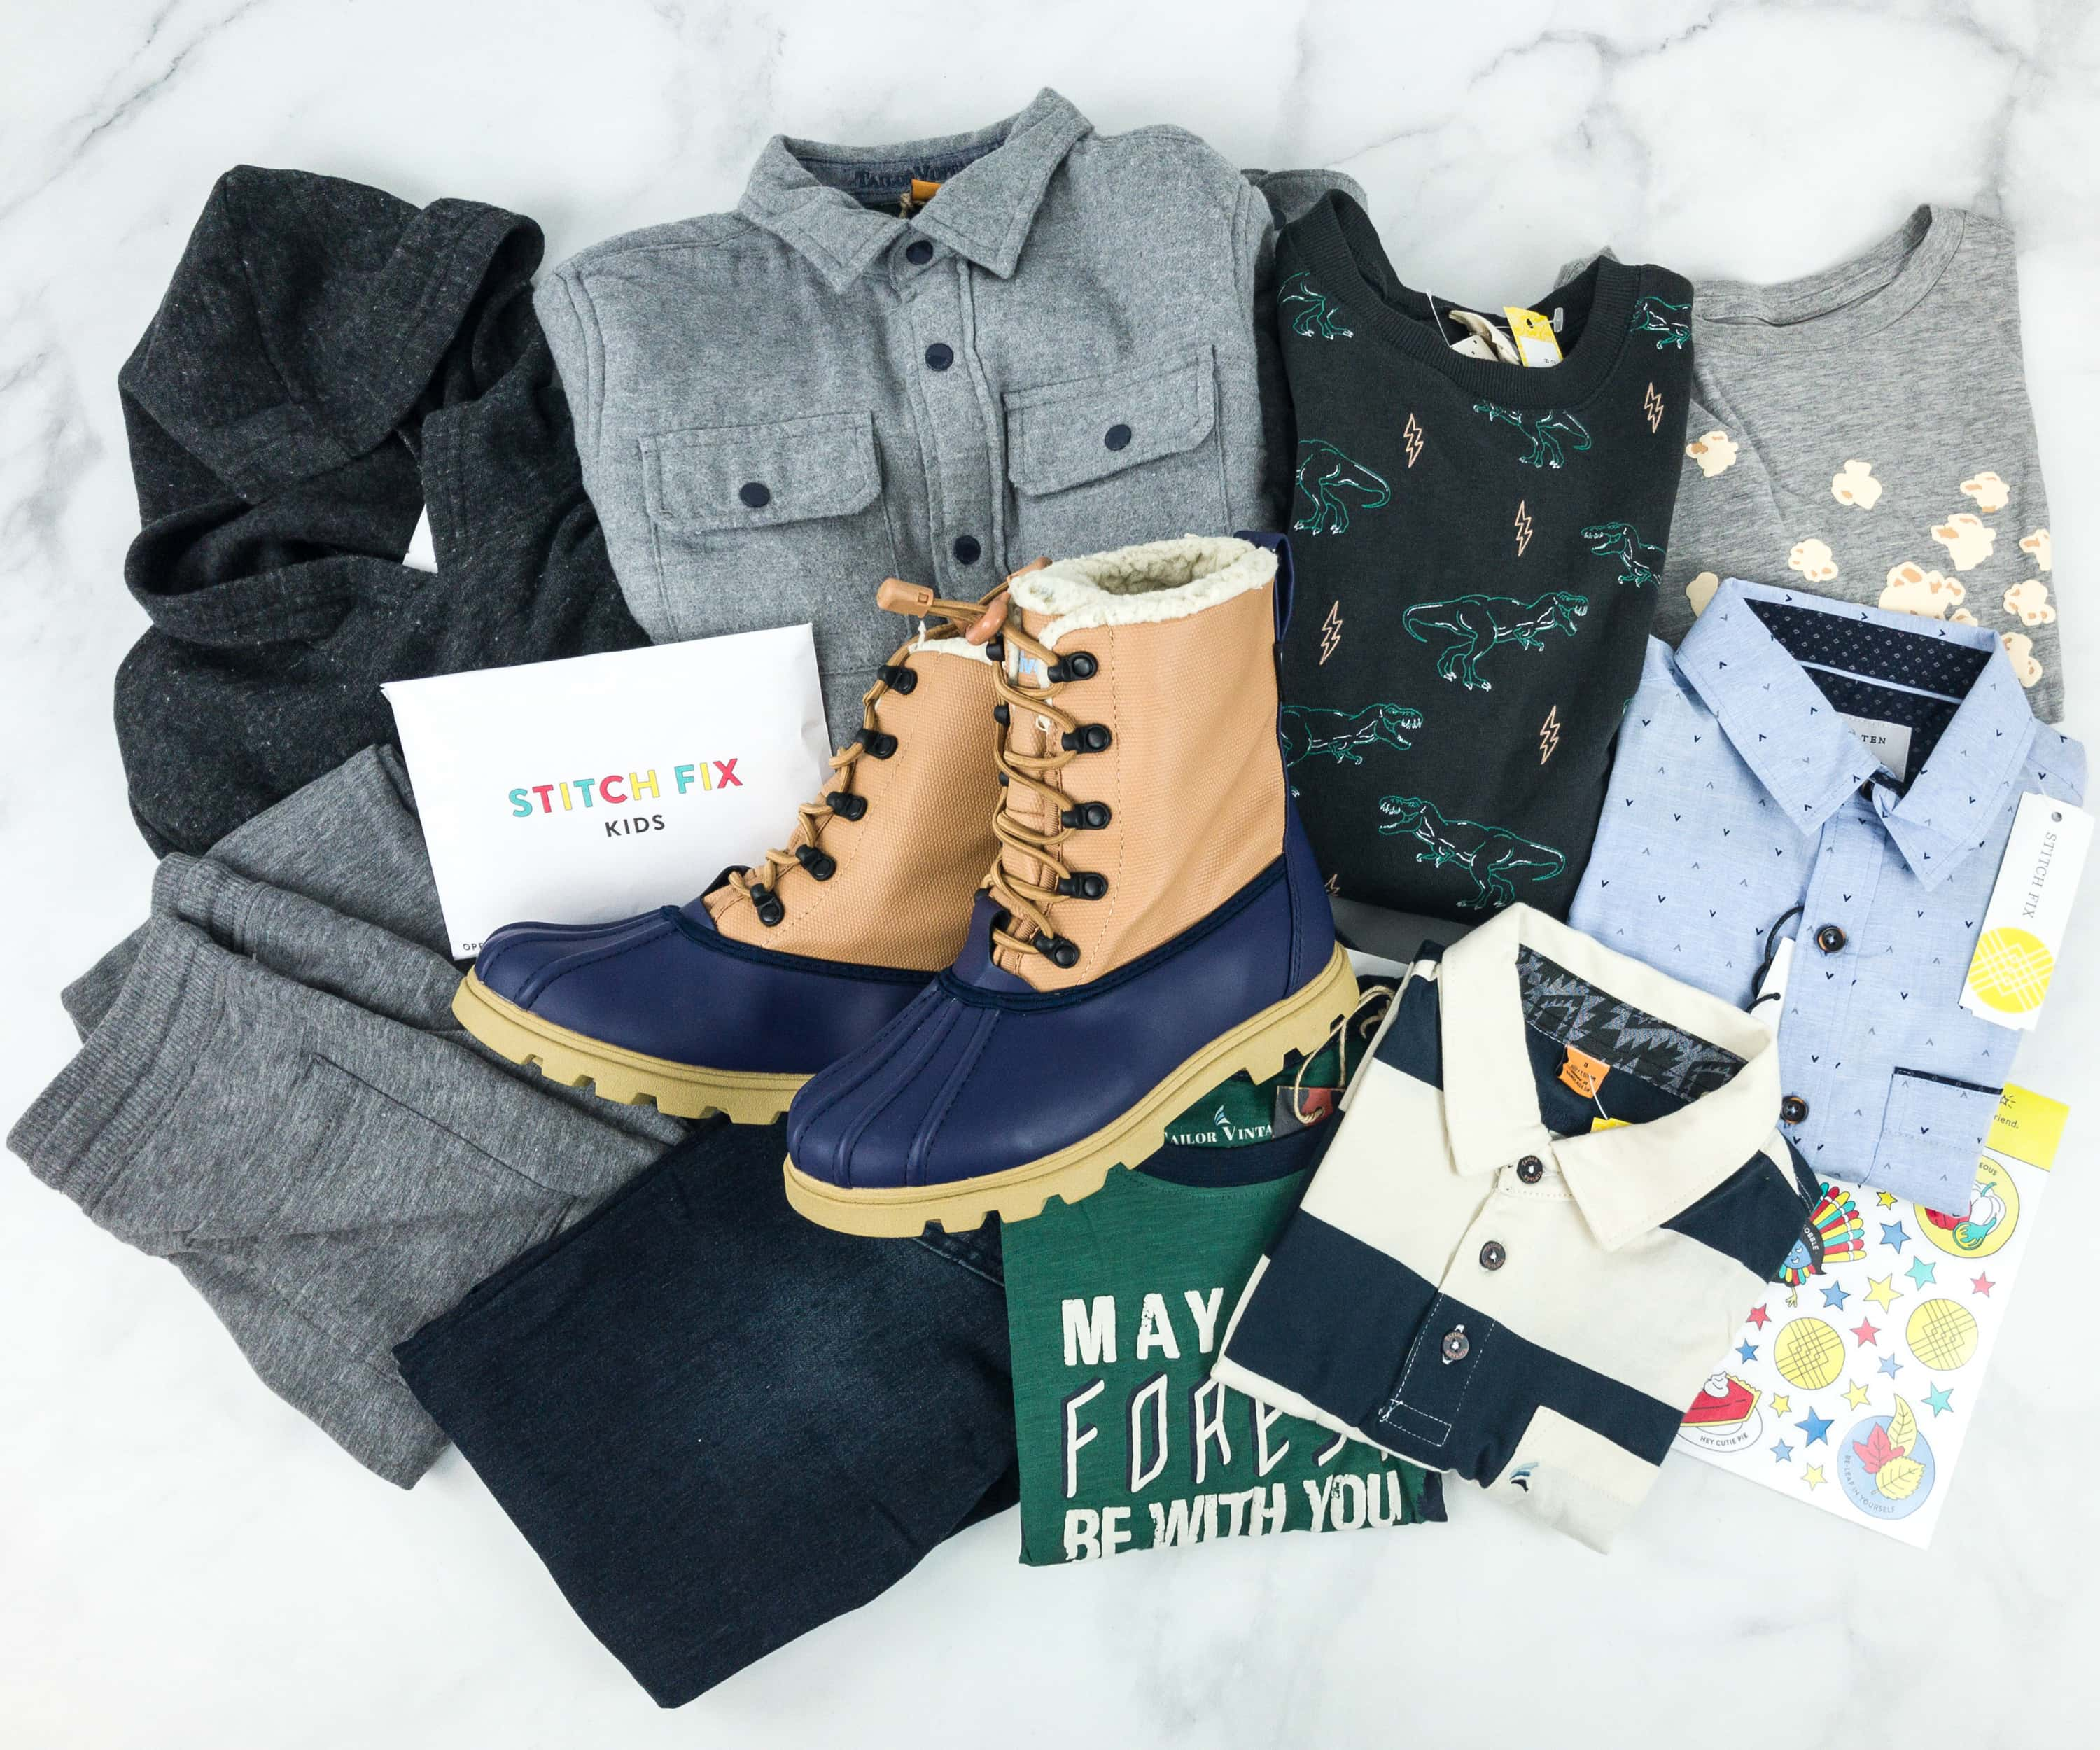 Stitch Fix Kids Review – Boys December 2018